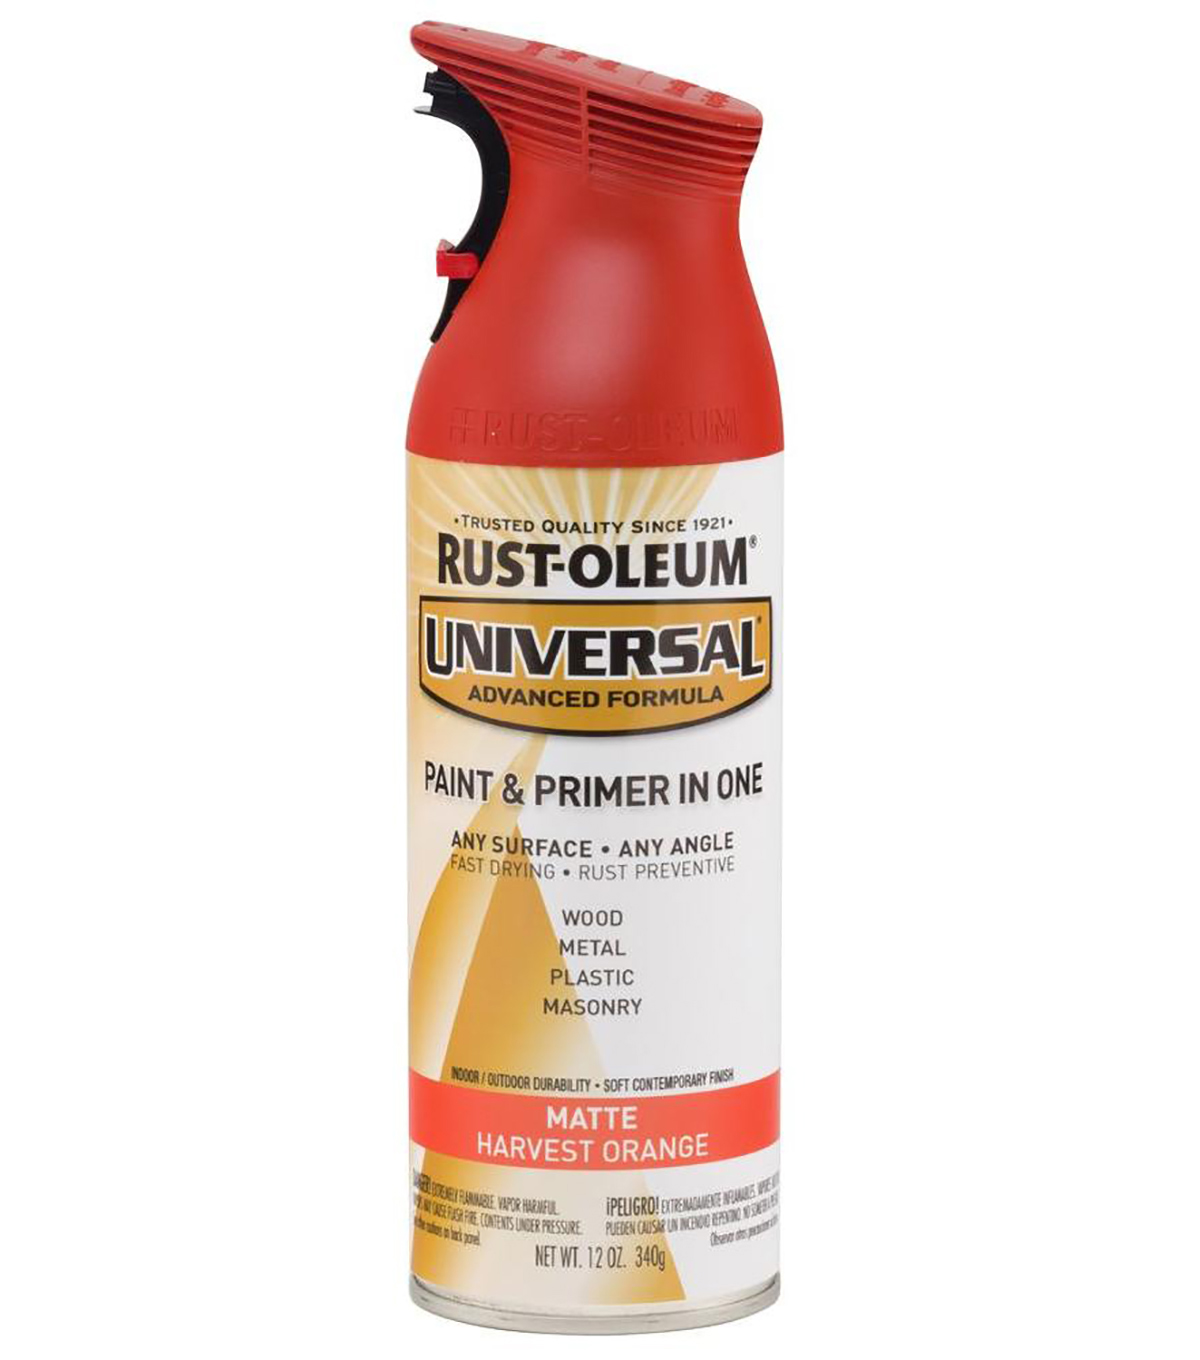 Rust-Oleum Universal 12 oz. Matte Paint & Primer in One-Harvest Orange